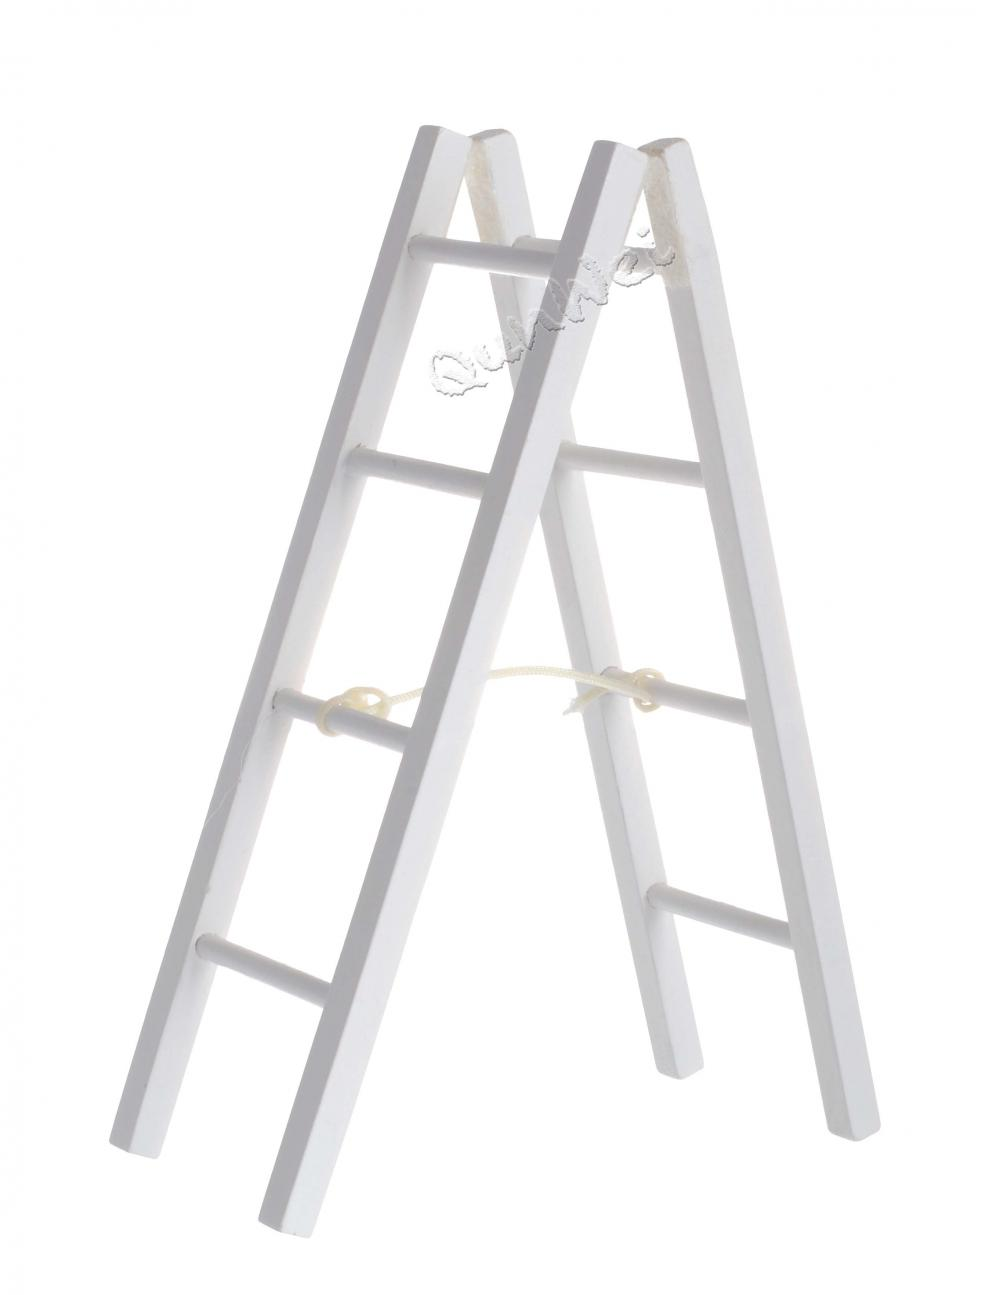 Dollhouse Ladder